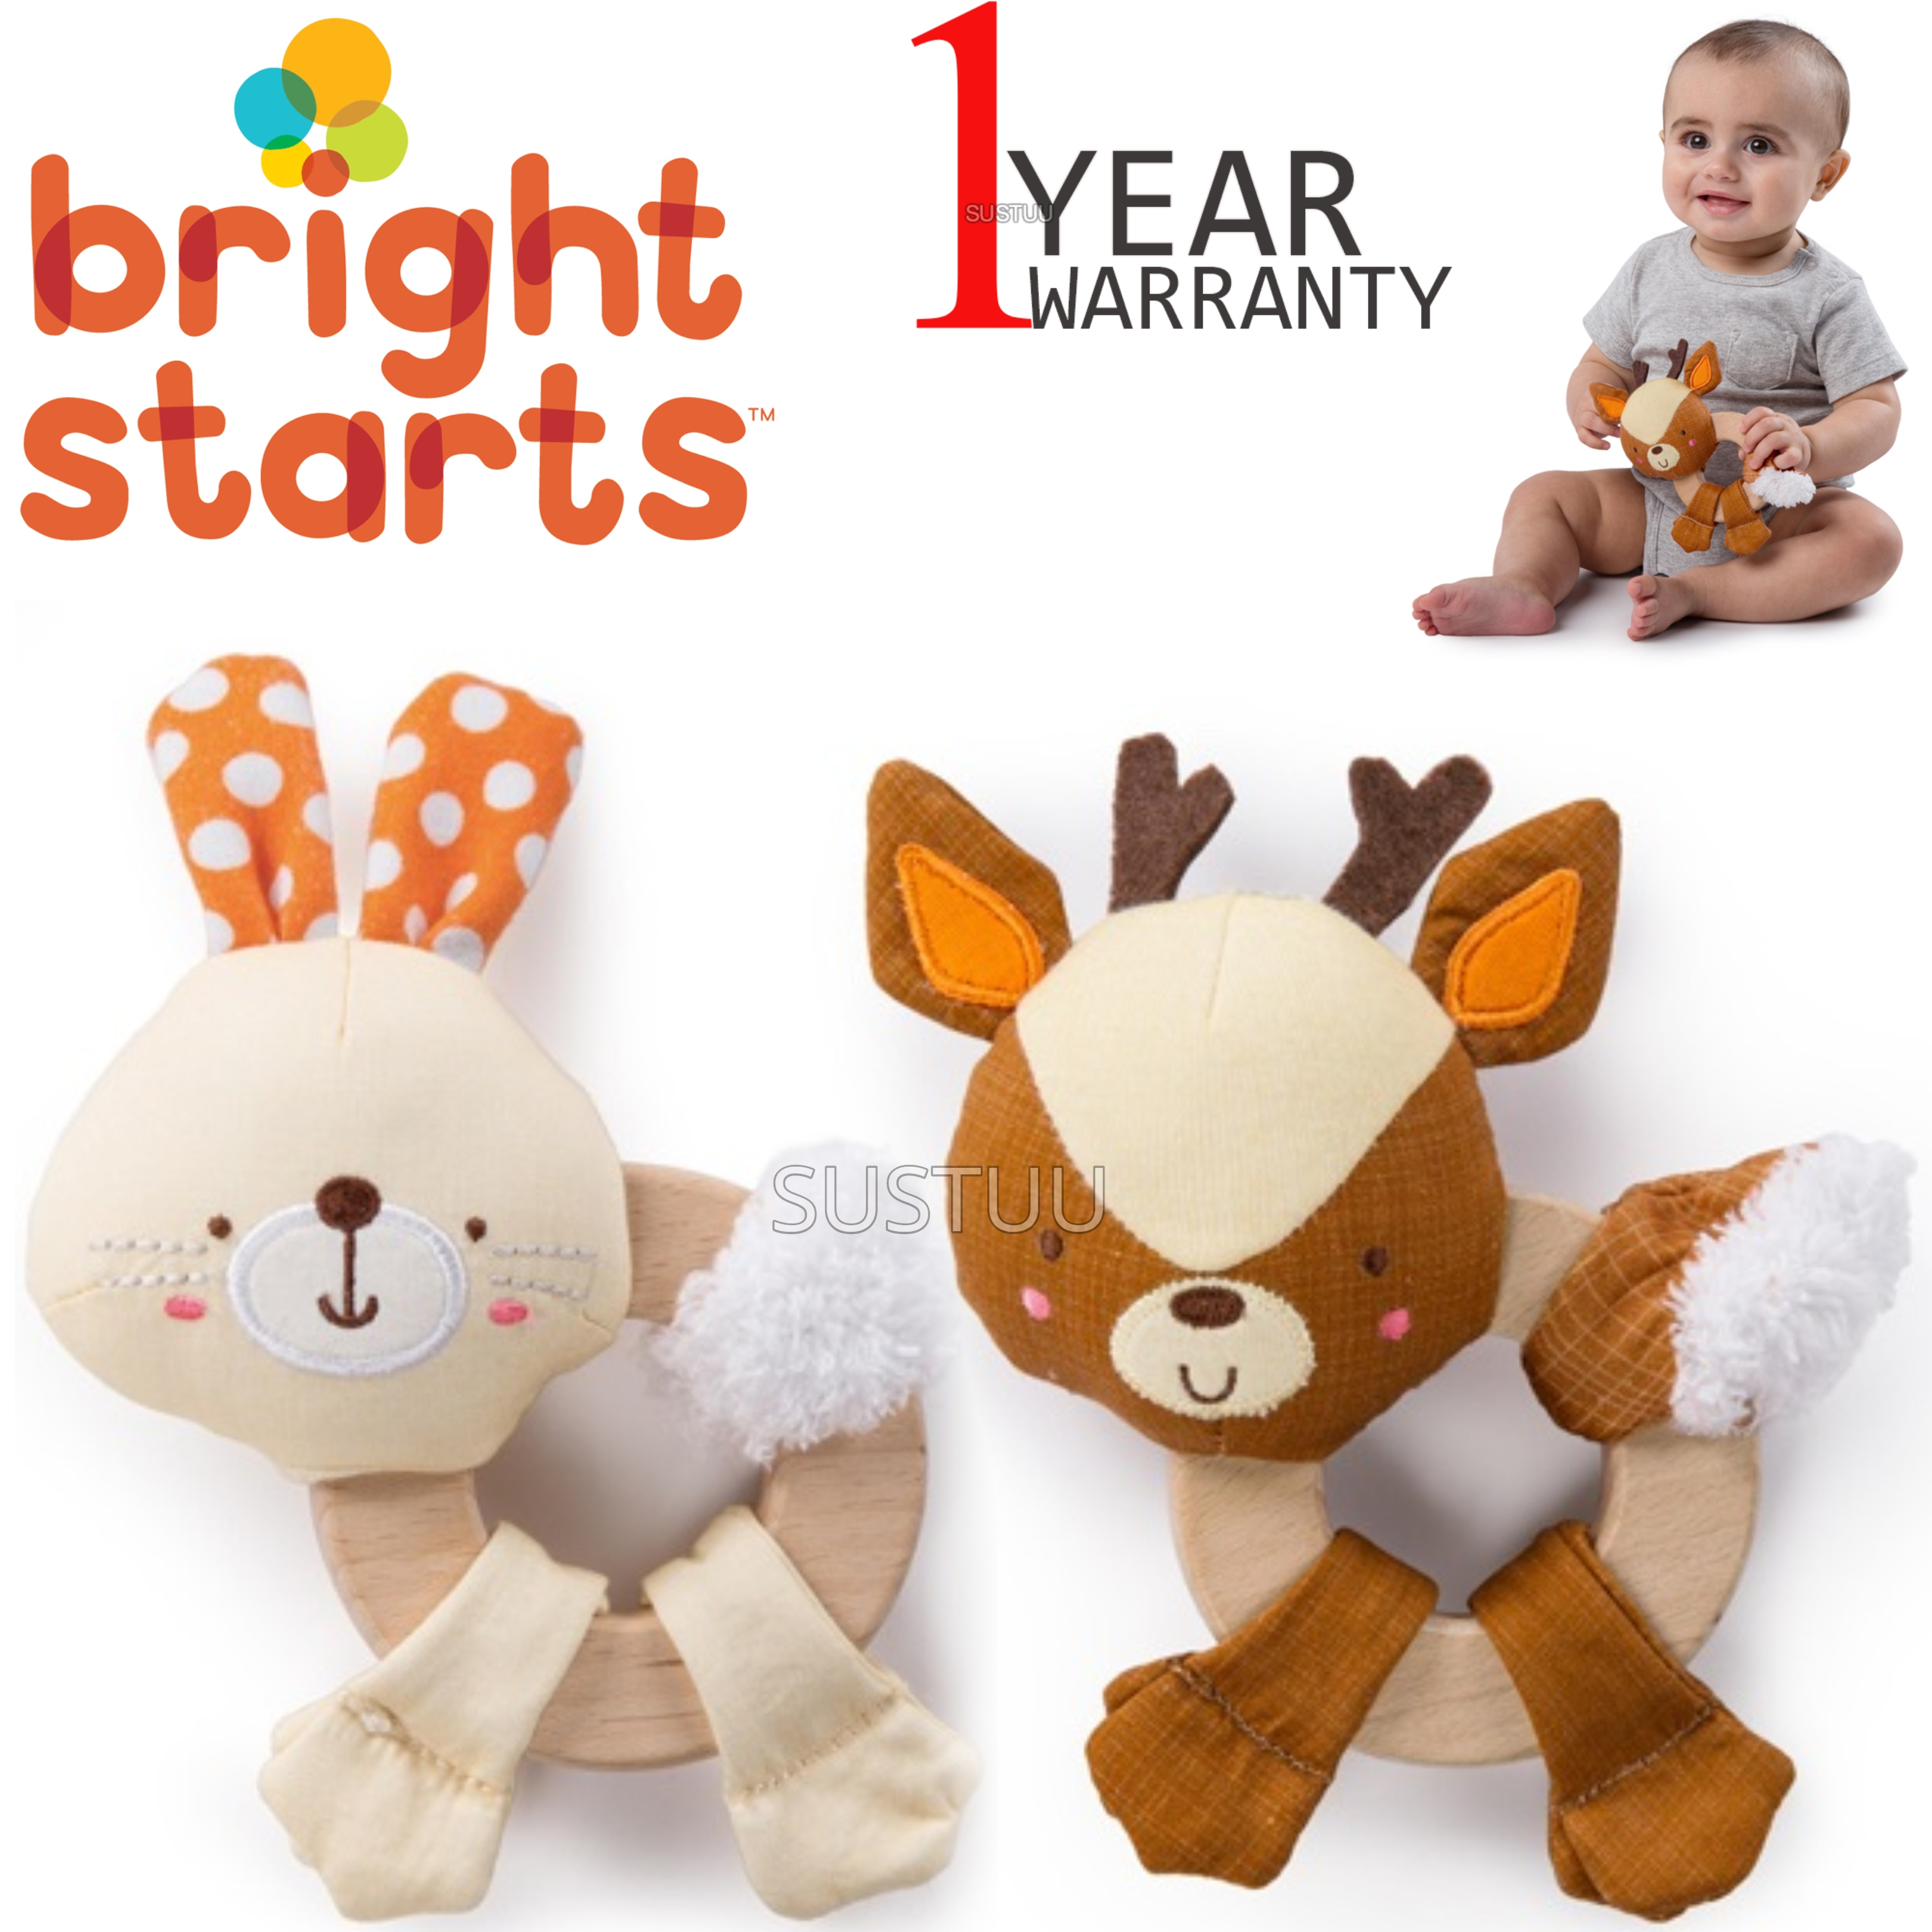 Bright Starts Simply Clutch and Hold Wood Toy   Kid Activity Toy With Rattle Sound